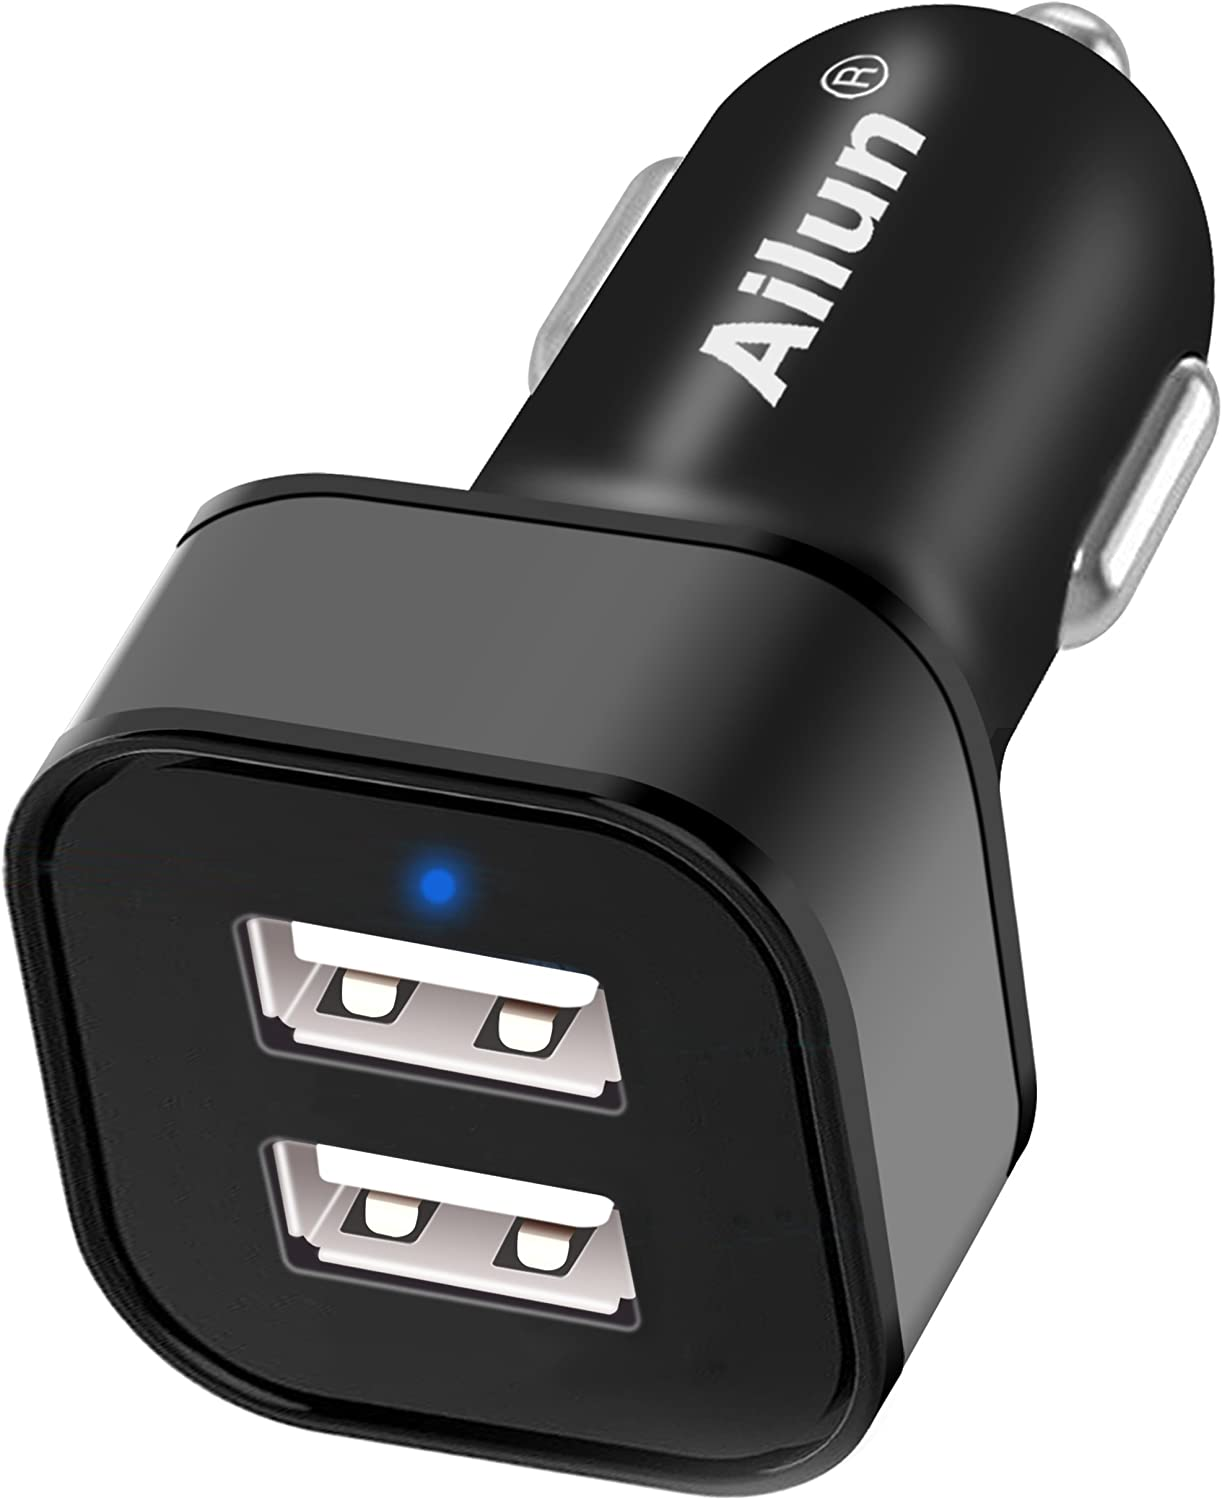 Ailun Car Charger Adapter Dual Smart USB Ports 4.8A 24W for Mobile Device for iPhone 11/11 Pro/11 Pro Max/X Xs XR Xs Max 8 7 Plus 6 6s Plus Galaxy S10 Plus S7 S6 Note 10